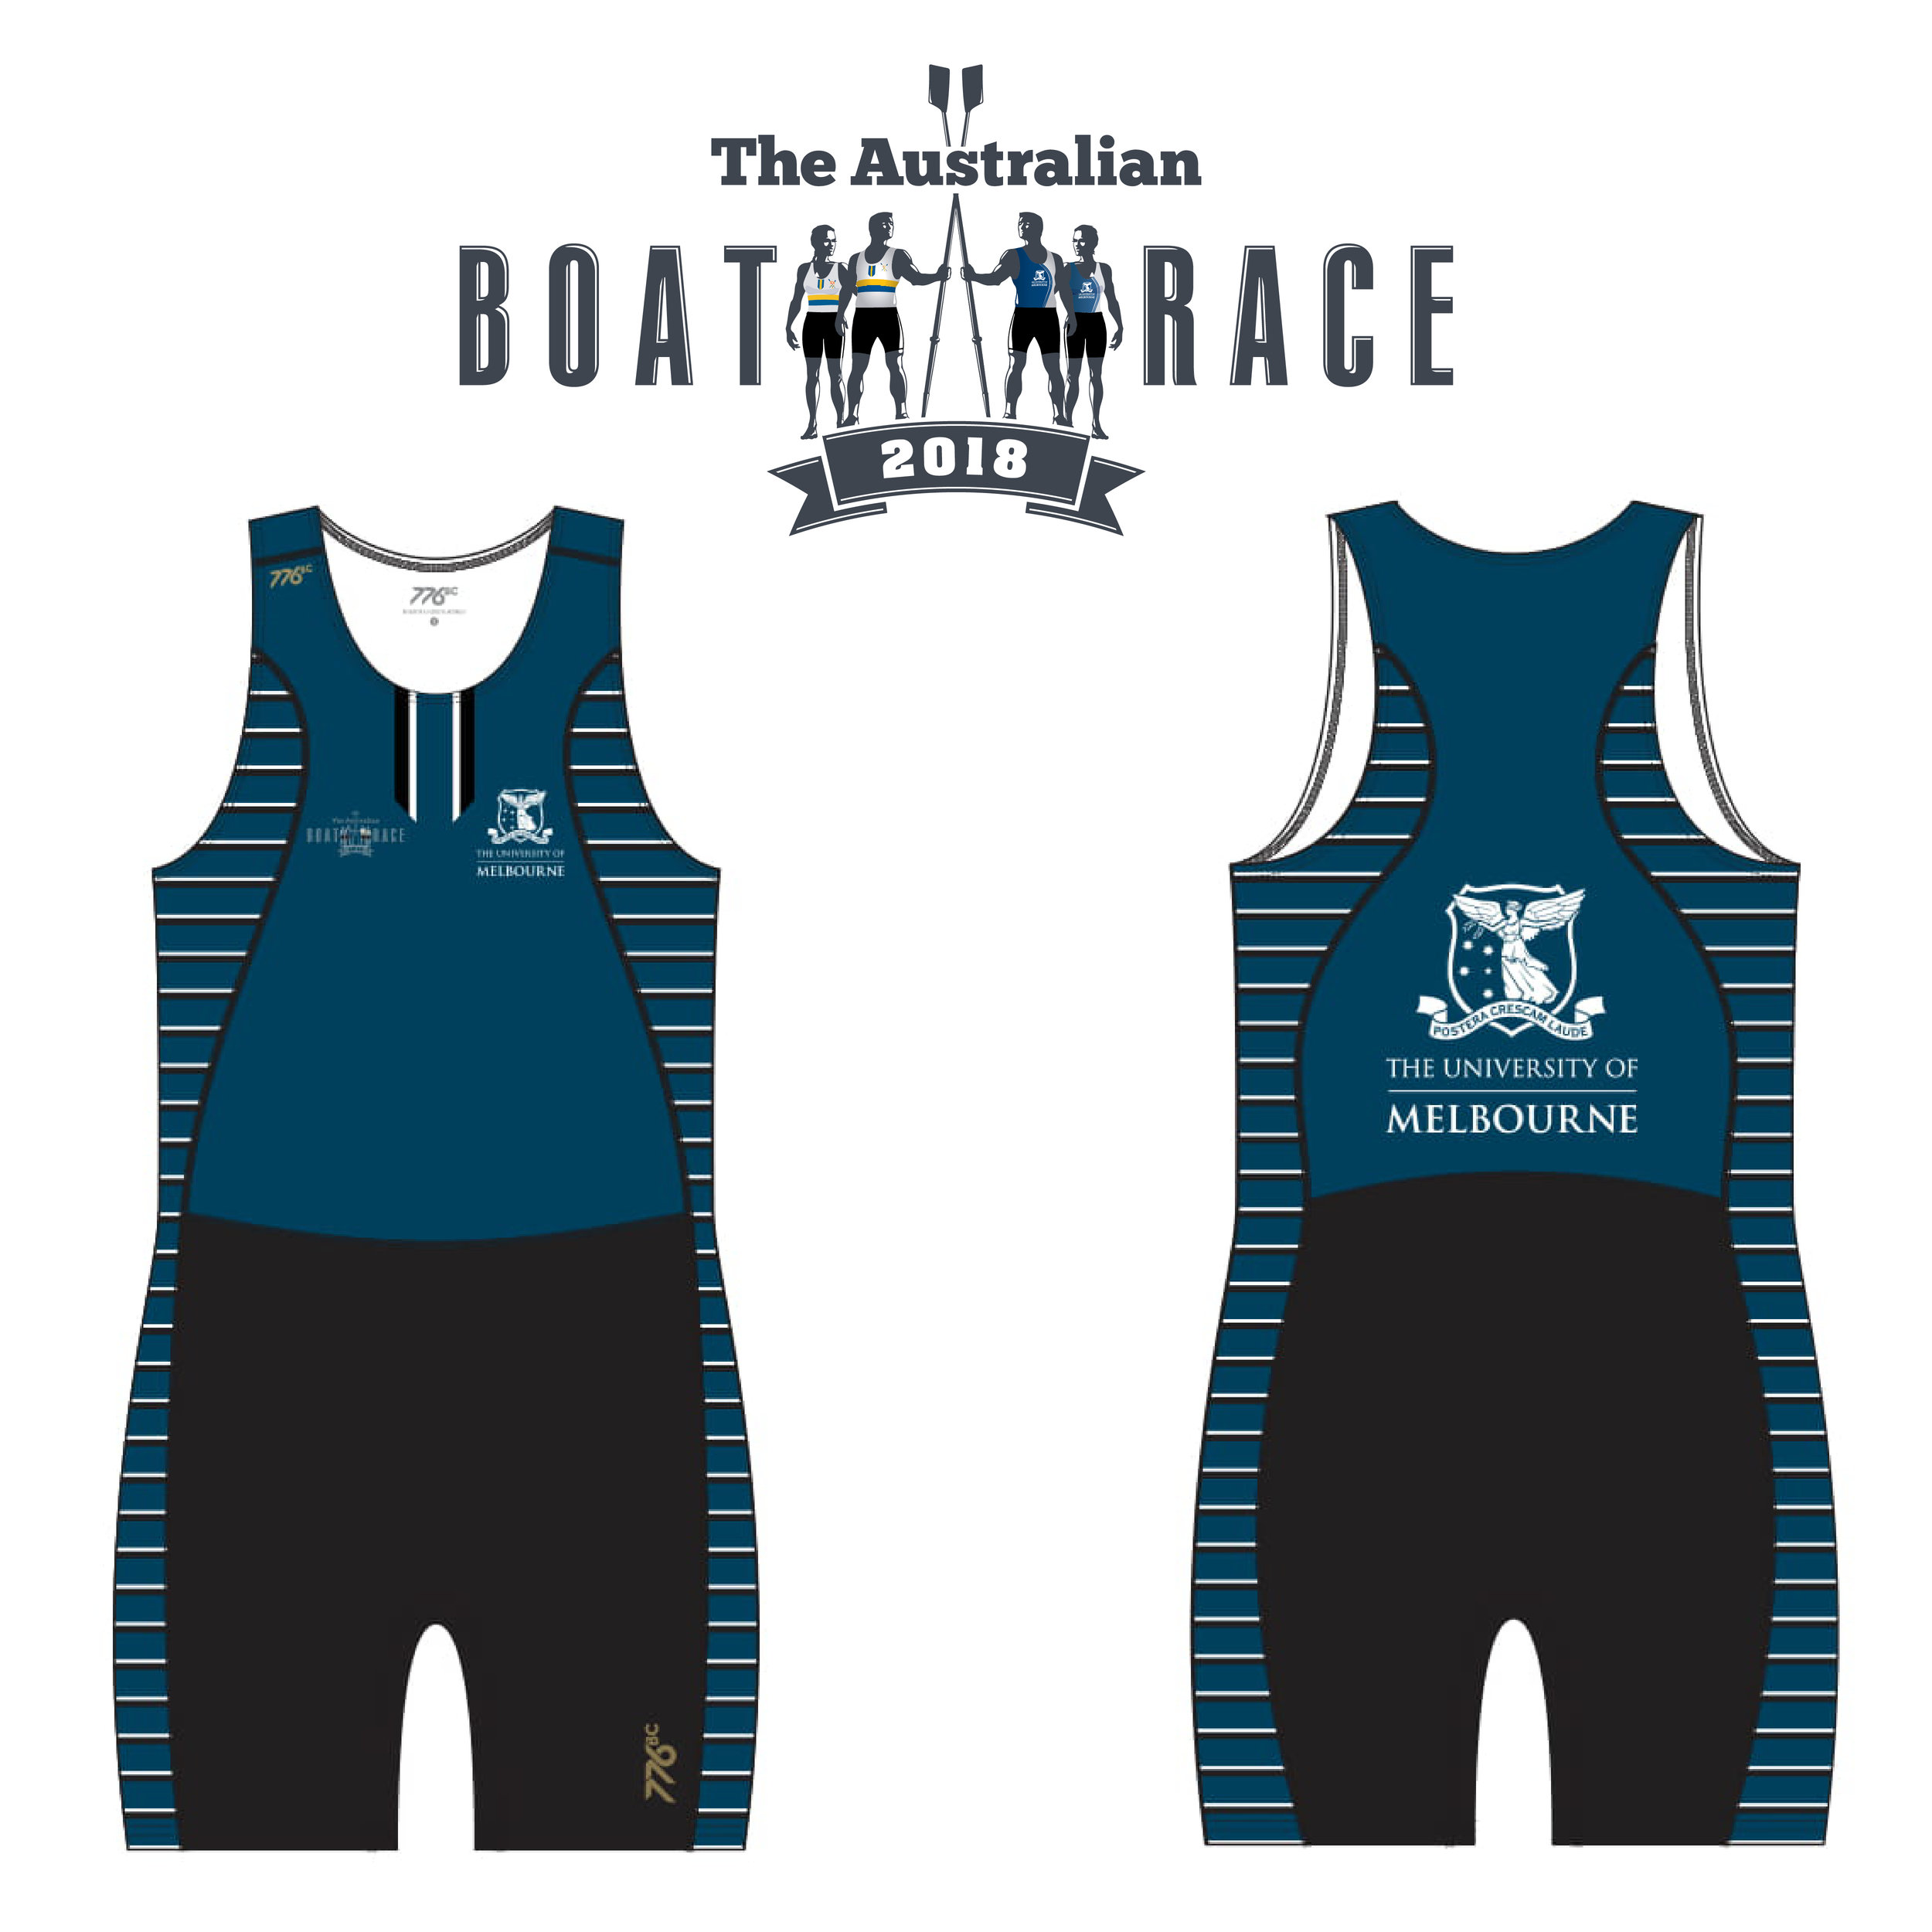 Melbourne - Melbourne will wear a uniform based around their traditional blue colour, with a lower black section from the waist down and a side panel running the length of the rowing suit with horizontal white stripes on blue. The crest of Melbourne University features in large size on the back of the suit showing the Goddess of Victory (Nike) over the Southern cross. The crest is also featured on the front left pocket with the logo of The Australian Boat Race on the right pocket.